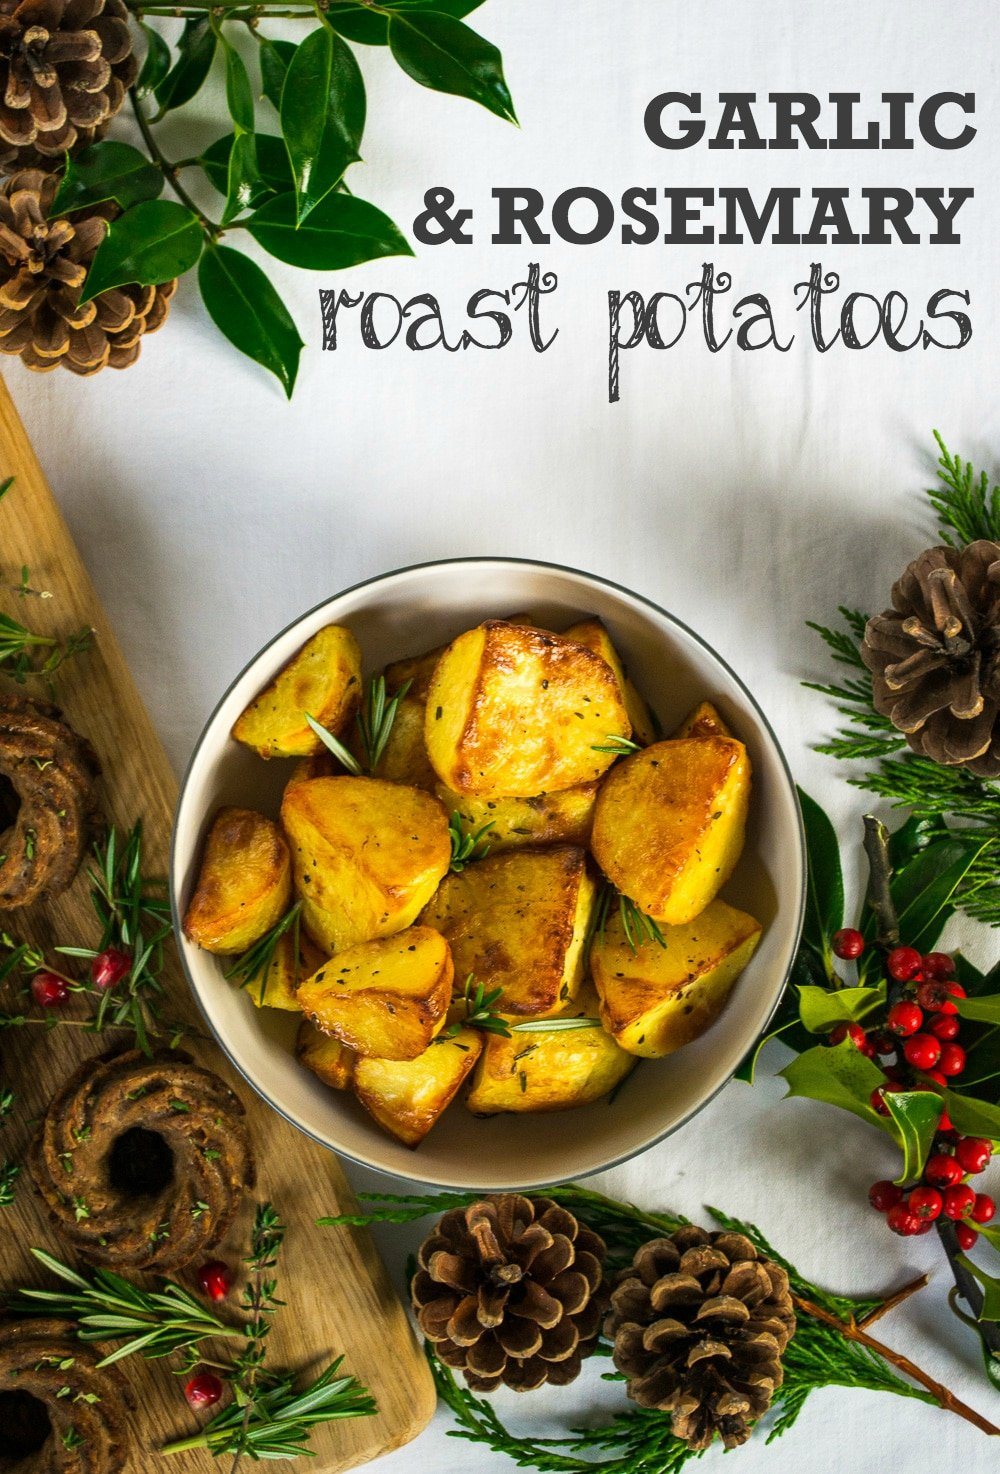 Garlic & Rosemary Roast Potatoes